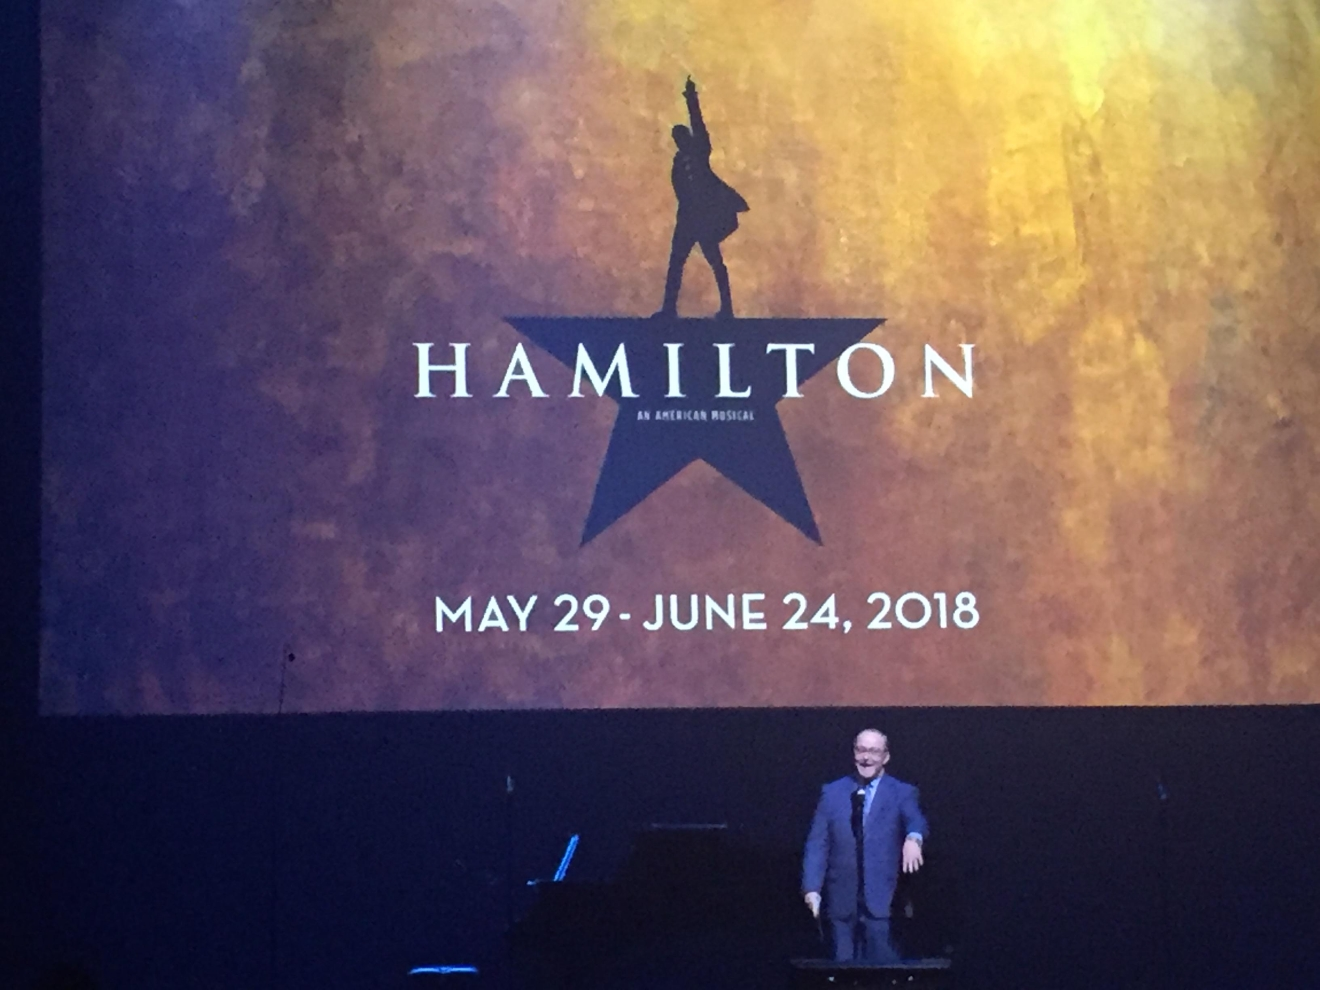 The highly-anticipated musical Hamilton was revealed as an upcoming tour during the Smith Center for the Performing Arts 2017-2018 Broadway series preview Tuesday, Feb. 28, 2017, in Reynolds Hall. It will run in Las Vegas from May 29 - June 24, 2018 (Jami Seymore | KSNV)